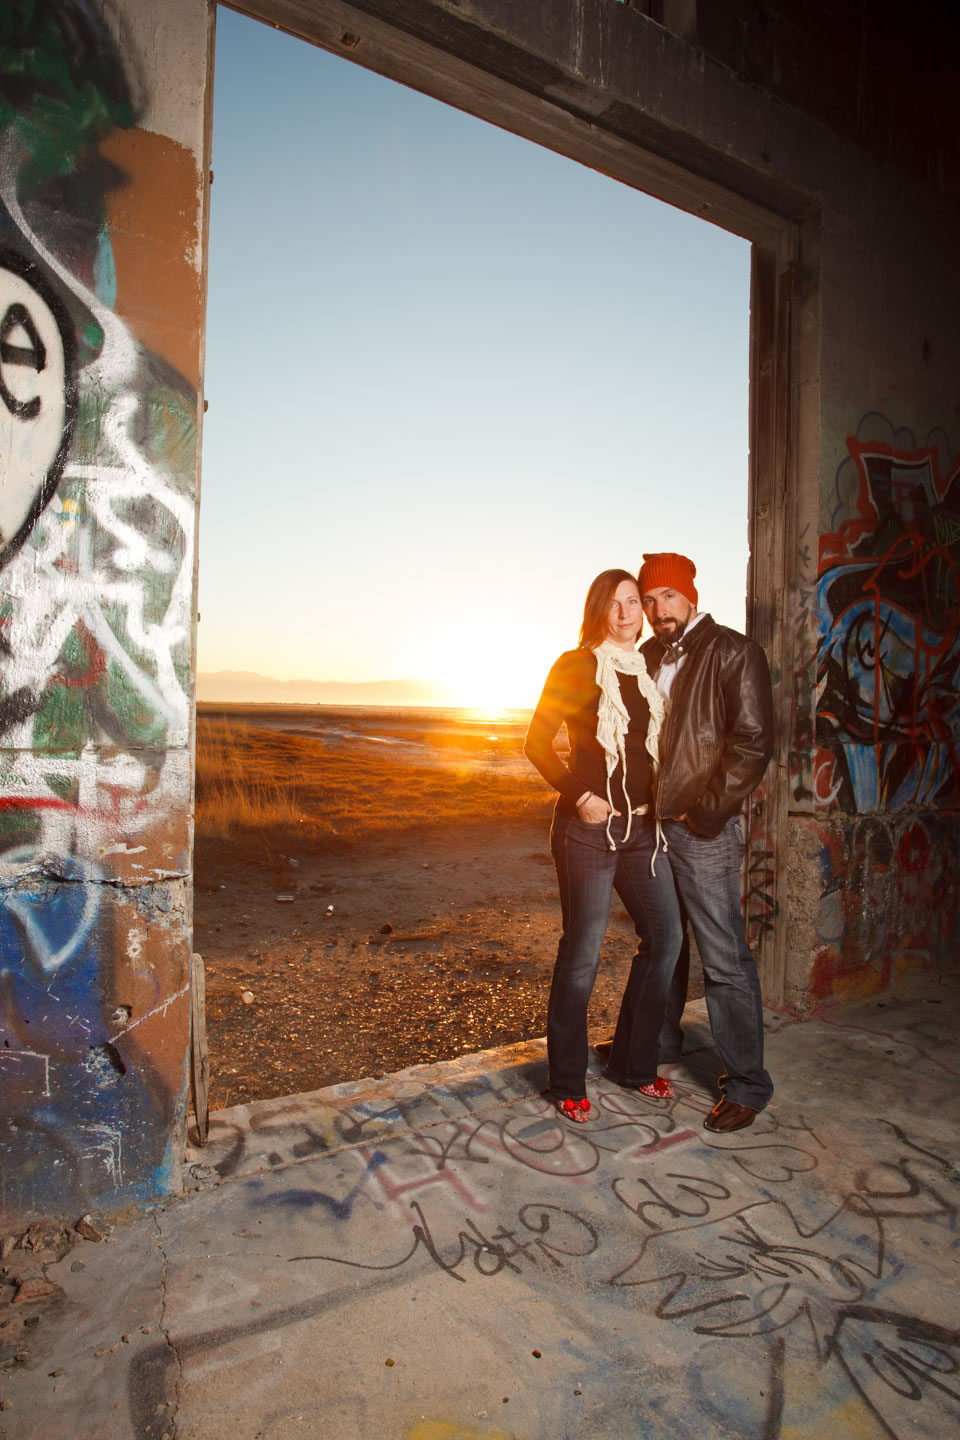 Sunset and couple portraiture